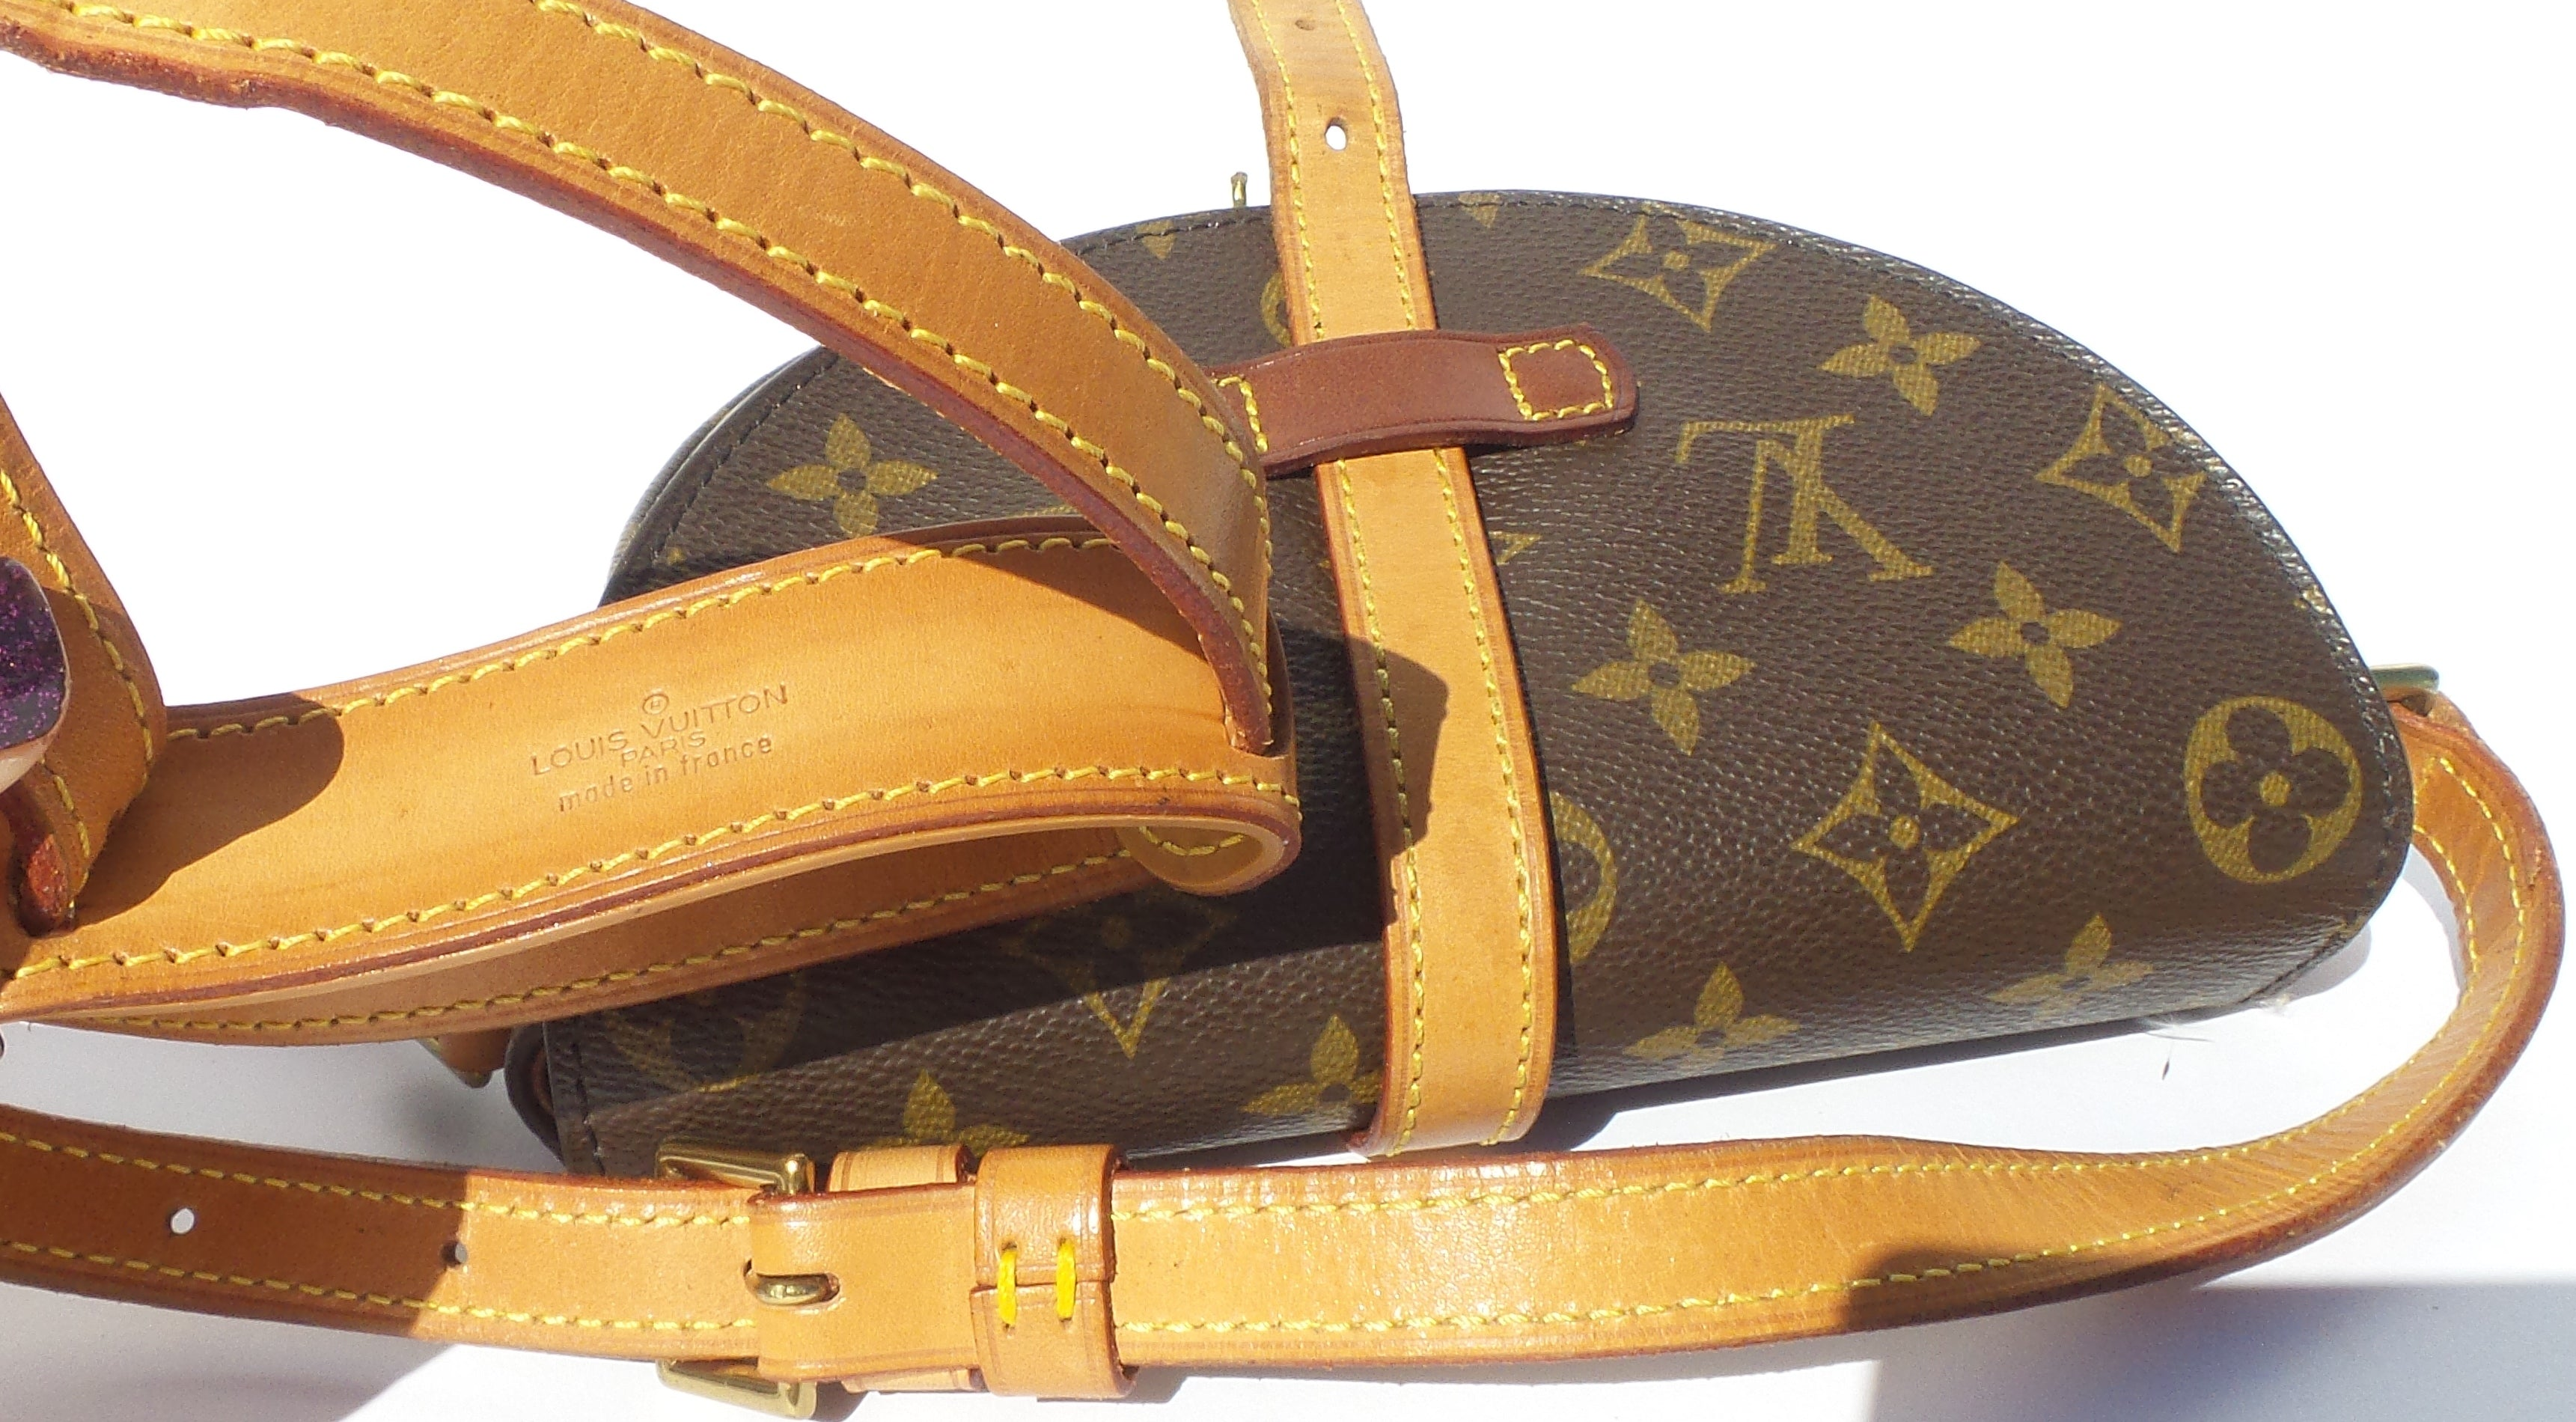 'Sold' LOUIS VUITTON Chantilly PM Monogram Canvas Leather Crossbody Messenger Bag VTG